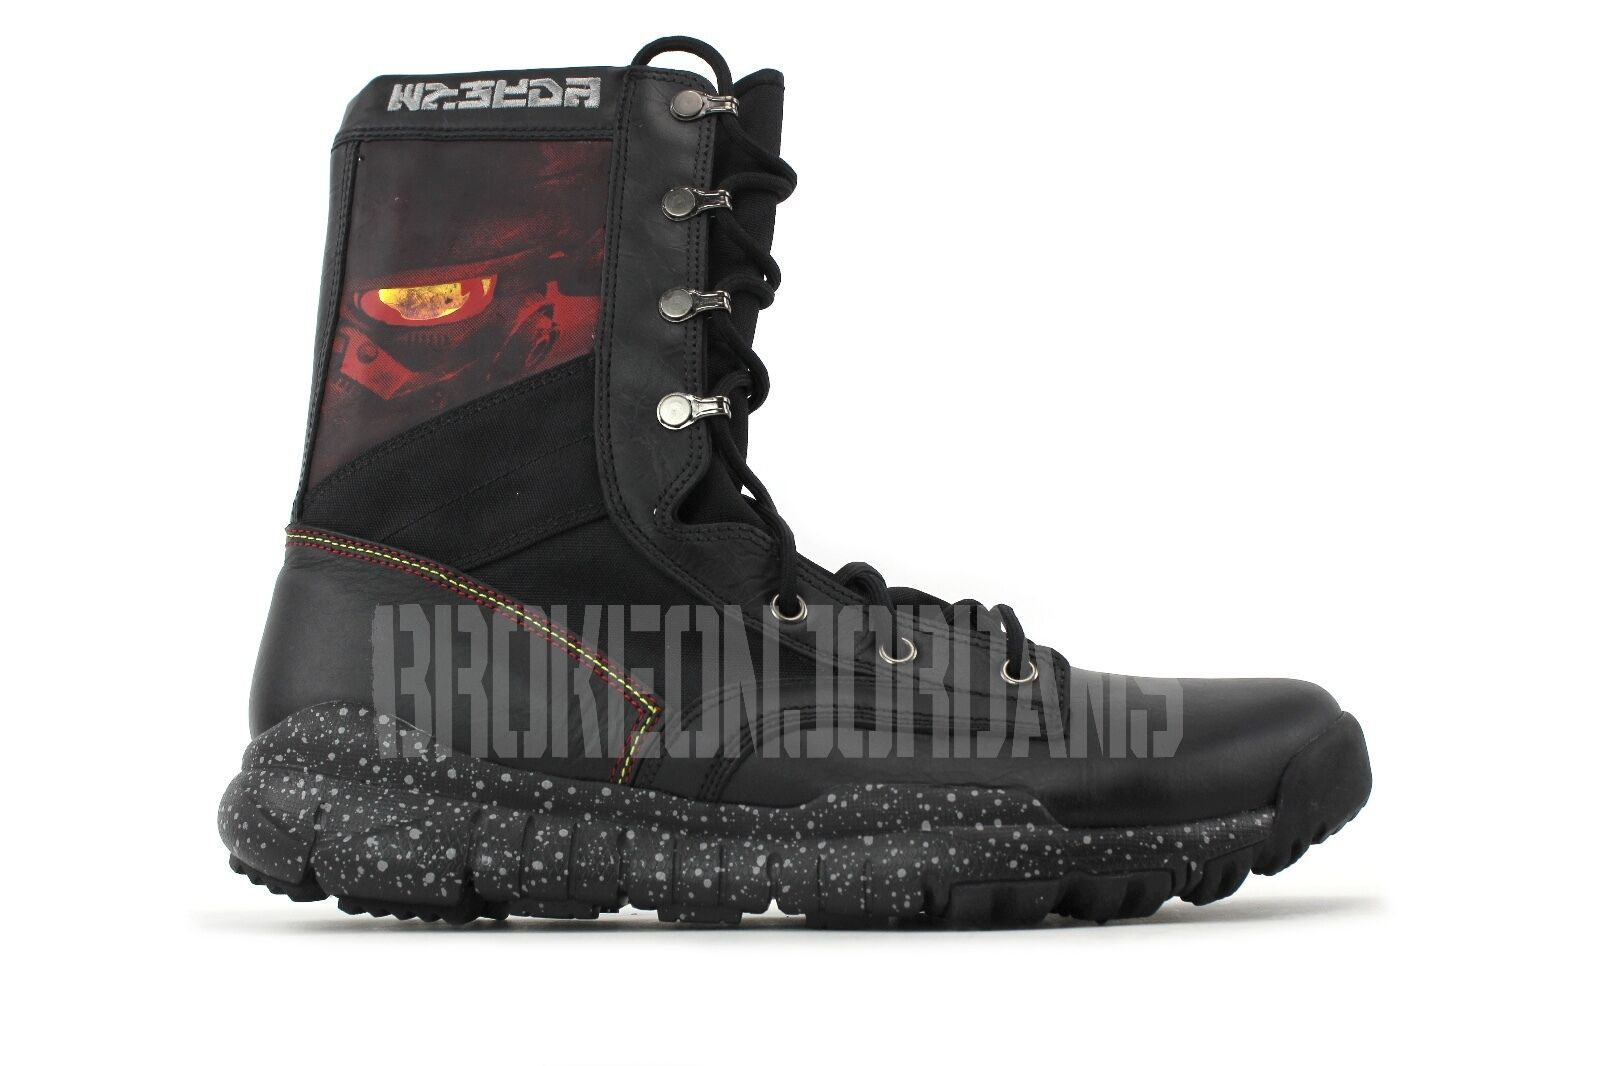 Nike SFB TZ KILLZONE PLAYSTATION BLACK RED sz 11.5 promo sample 2010